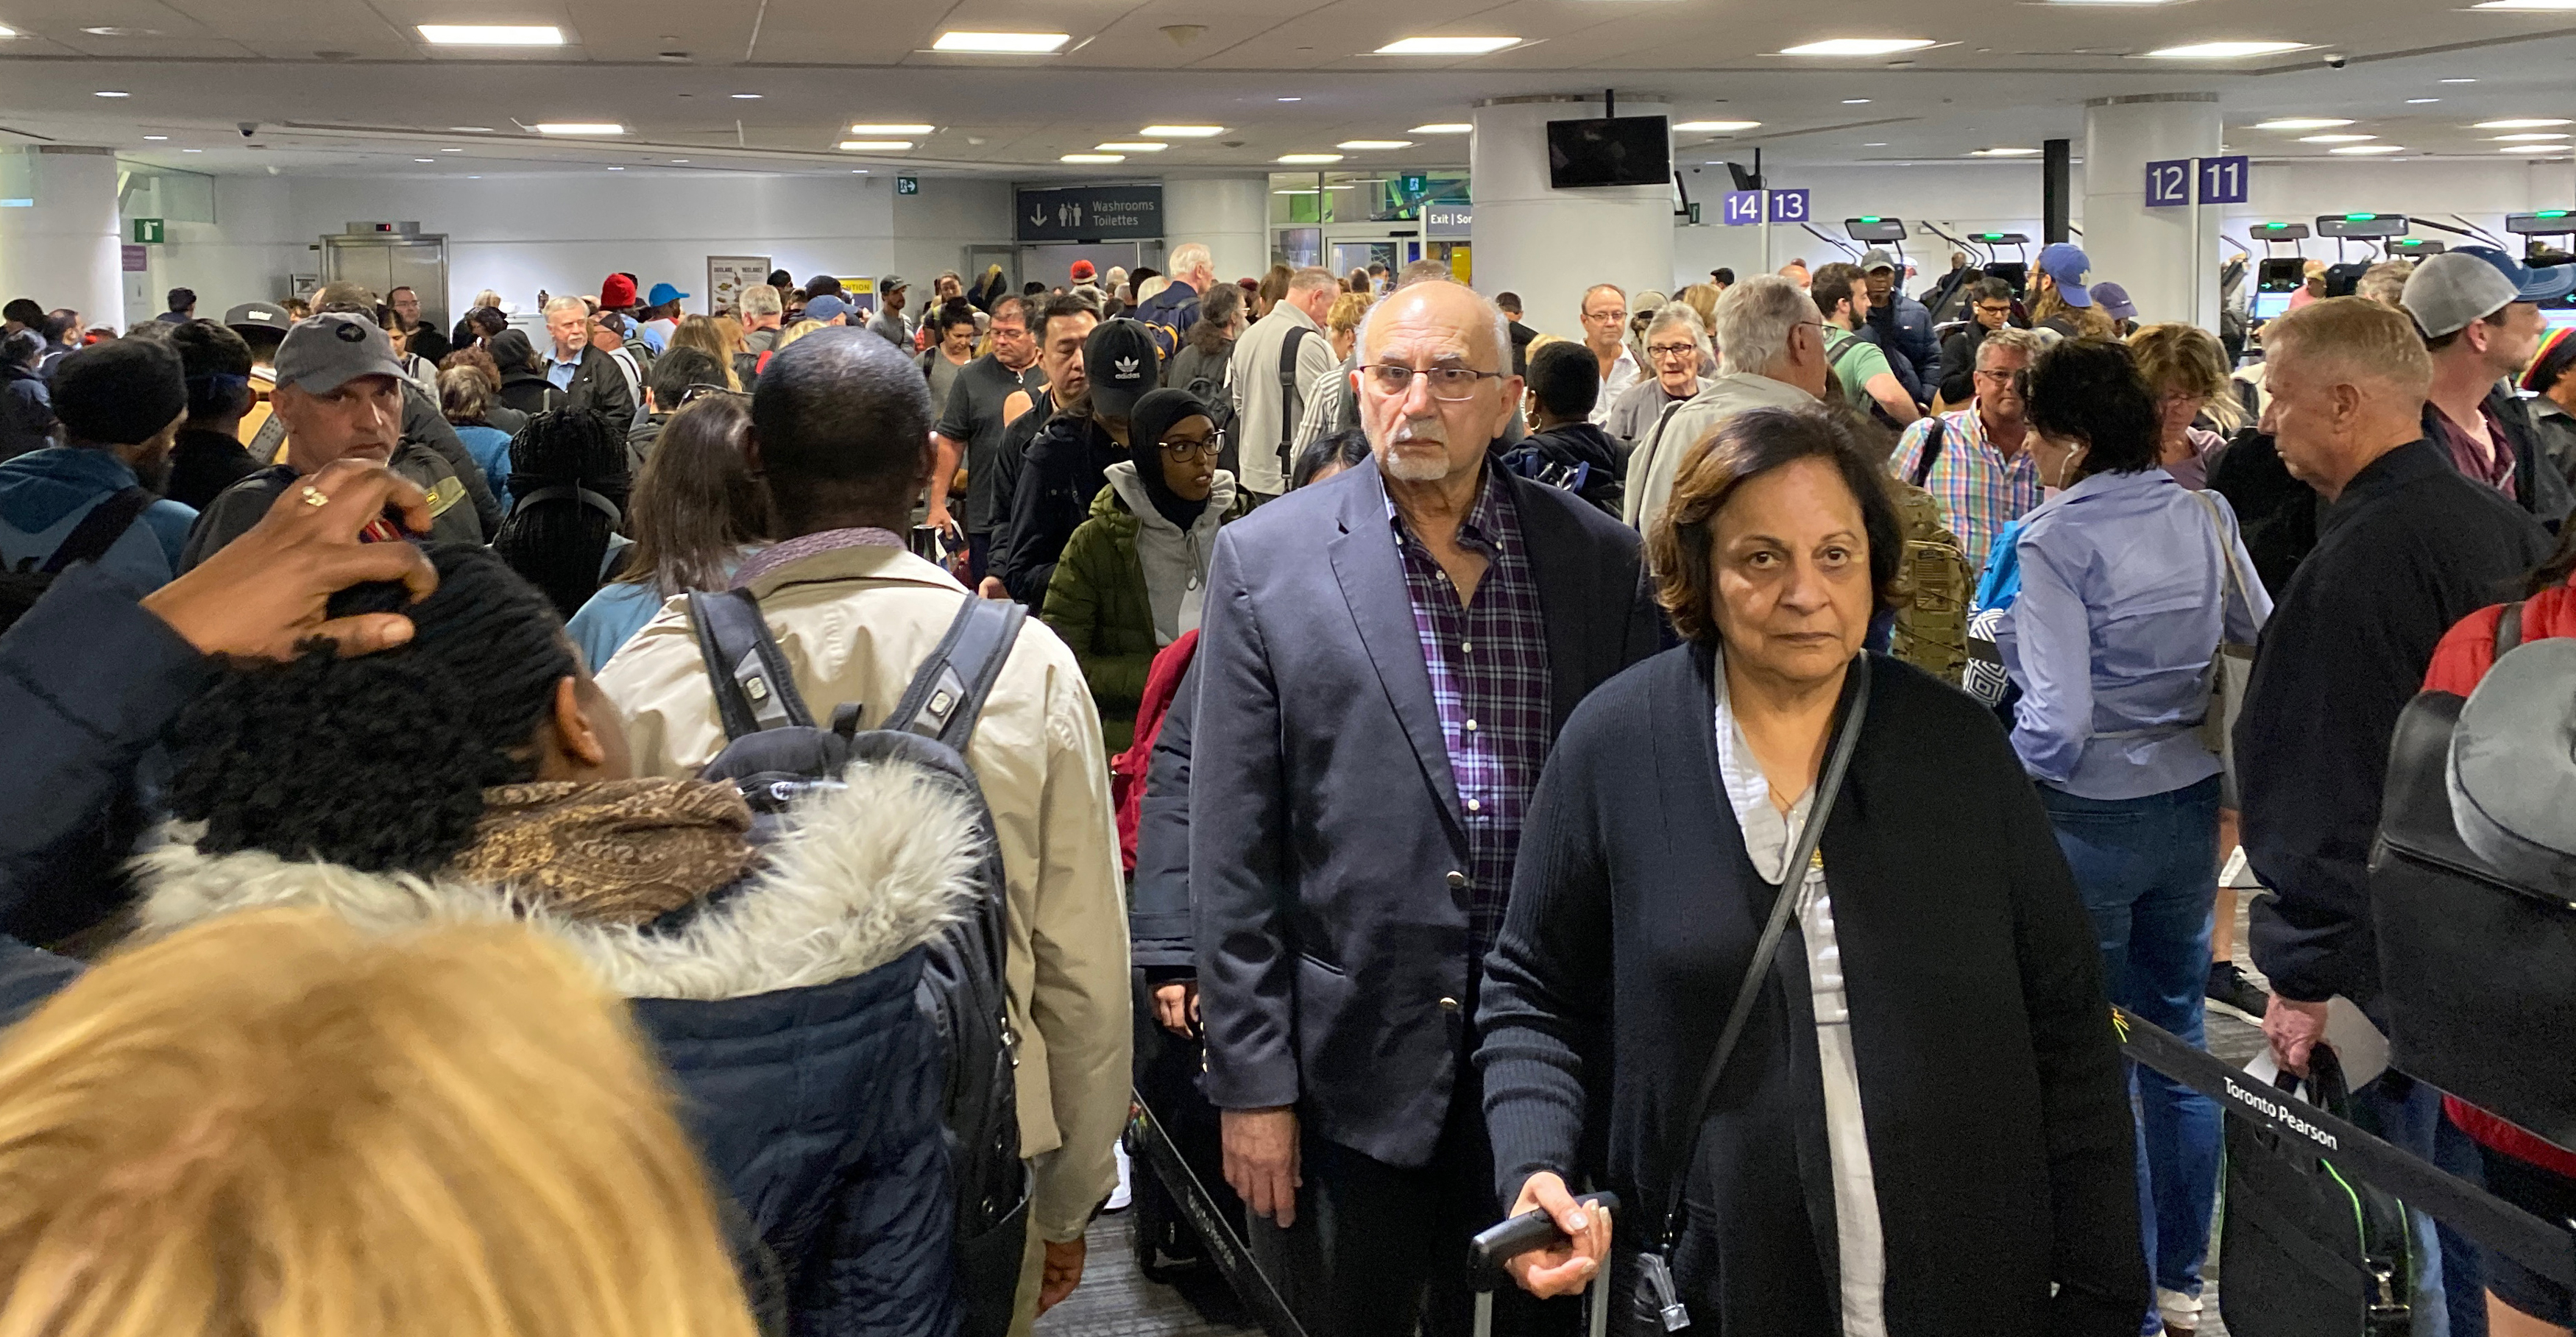 Toronto's Pearson International Airport, on March 14, 2020, was packed with crowds of unmasked people as Canadians returned home (Glen Canning)